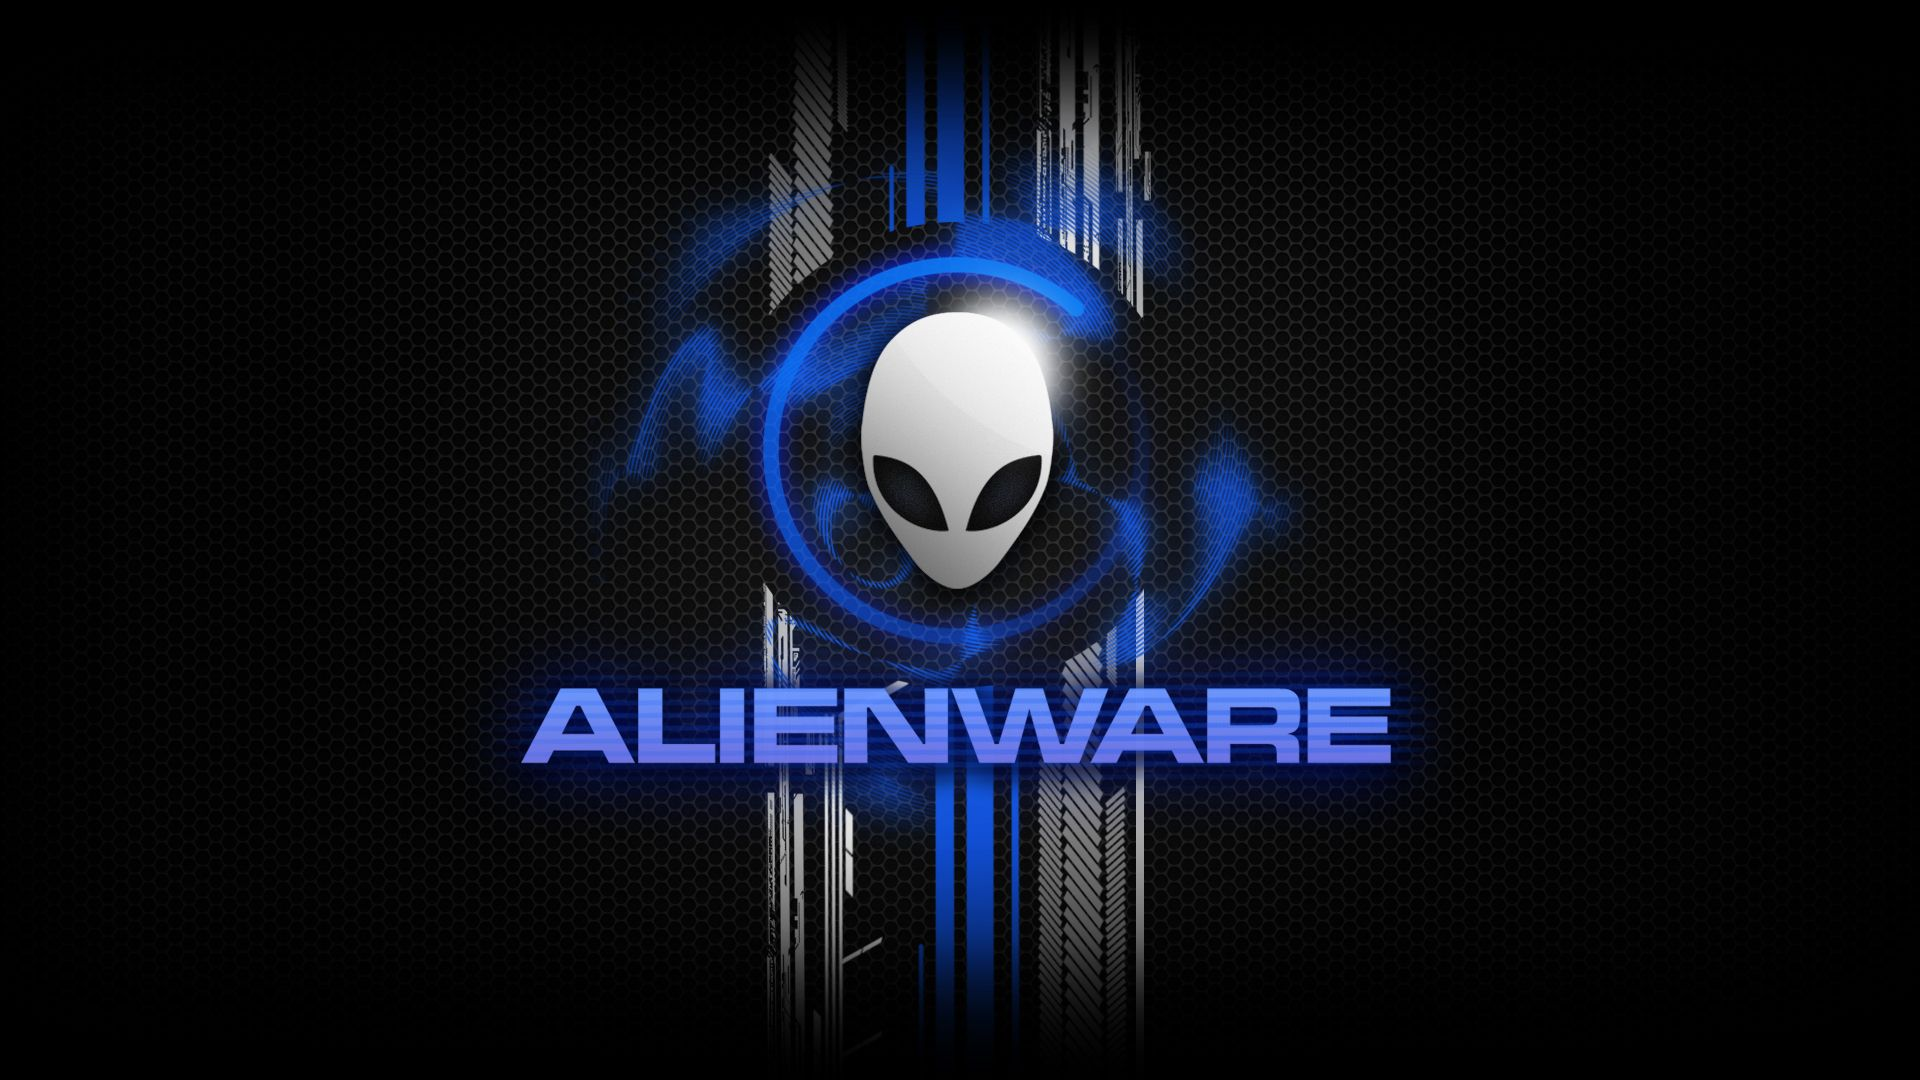 alienware live wallpaper